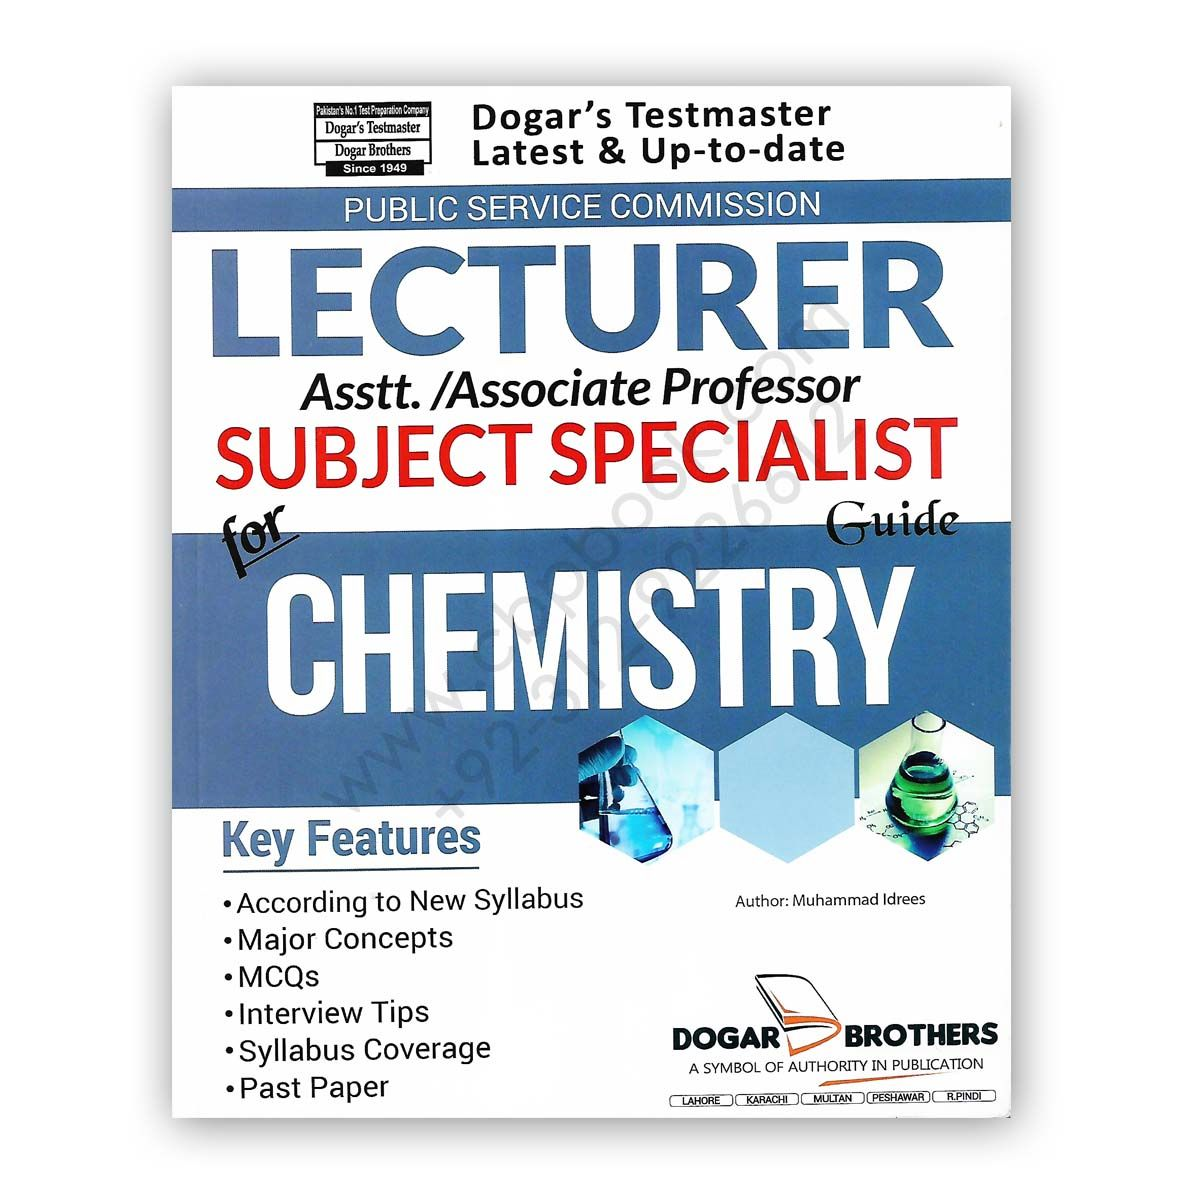 LECTURER / SUBJECT SPECIALIST Guide For CHEMISTRY DOGAR